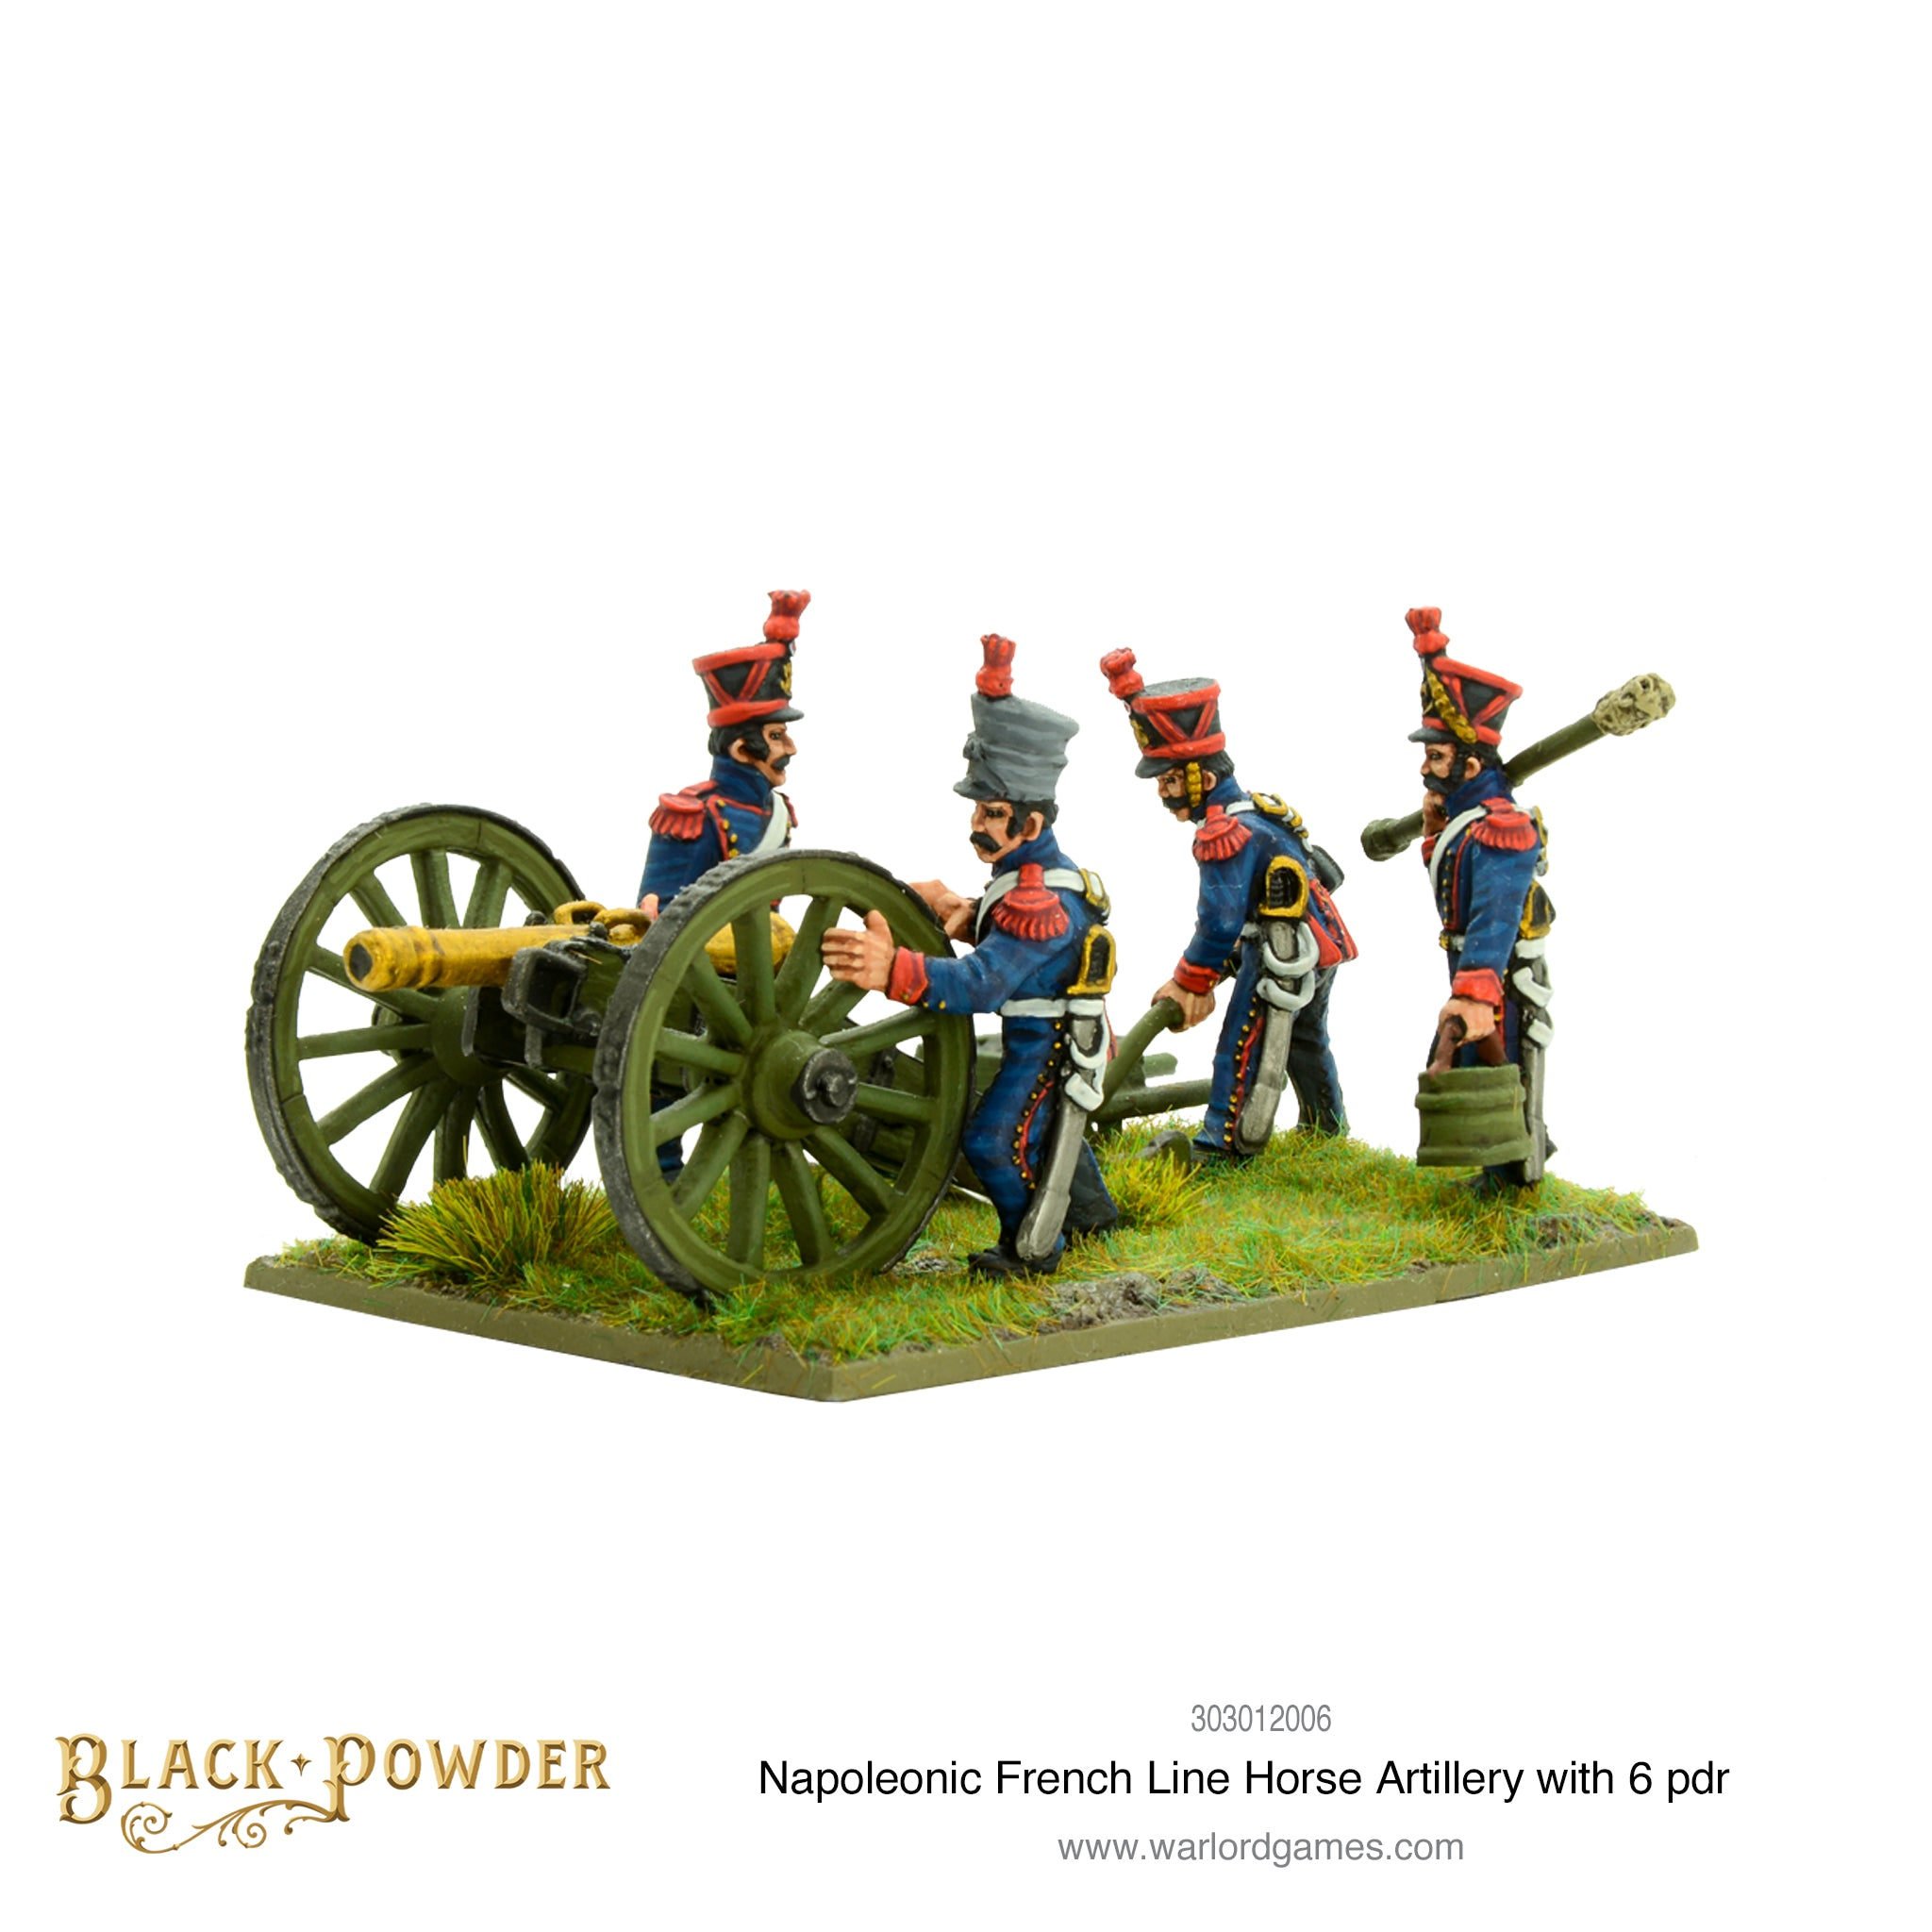 Napoleonic French Line Horse Artillery with 6 pdr